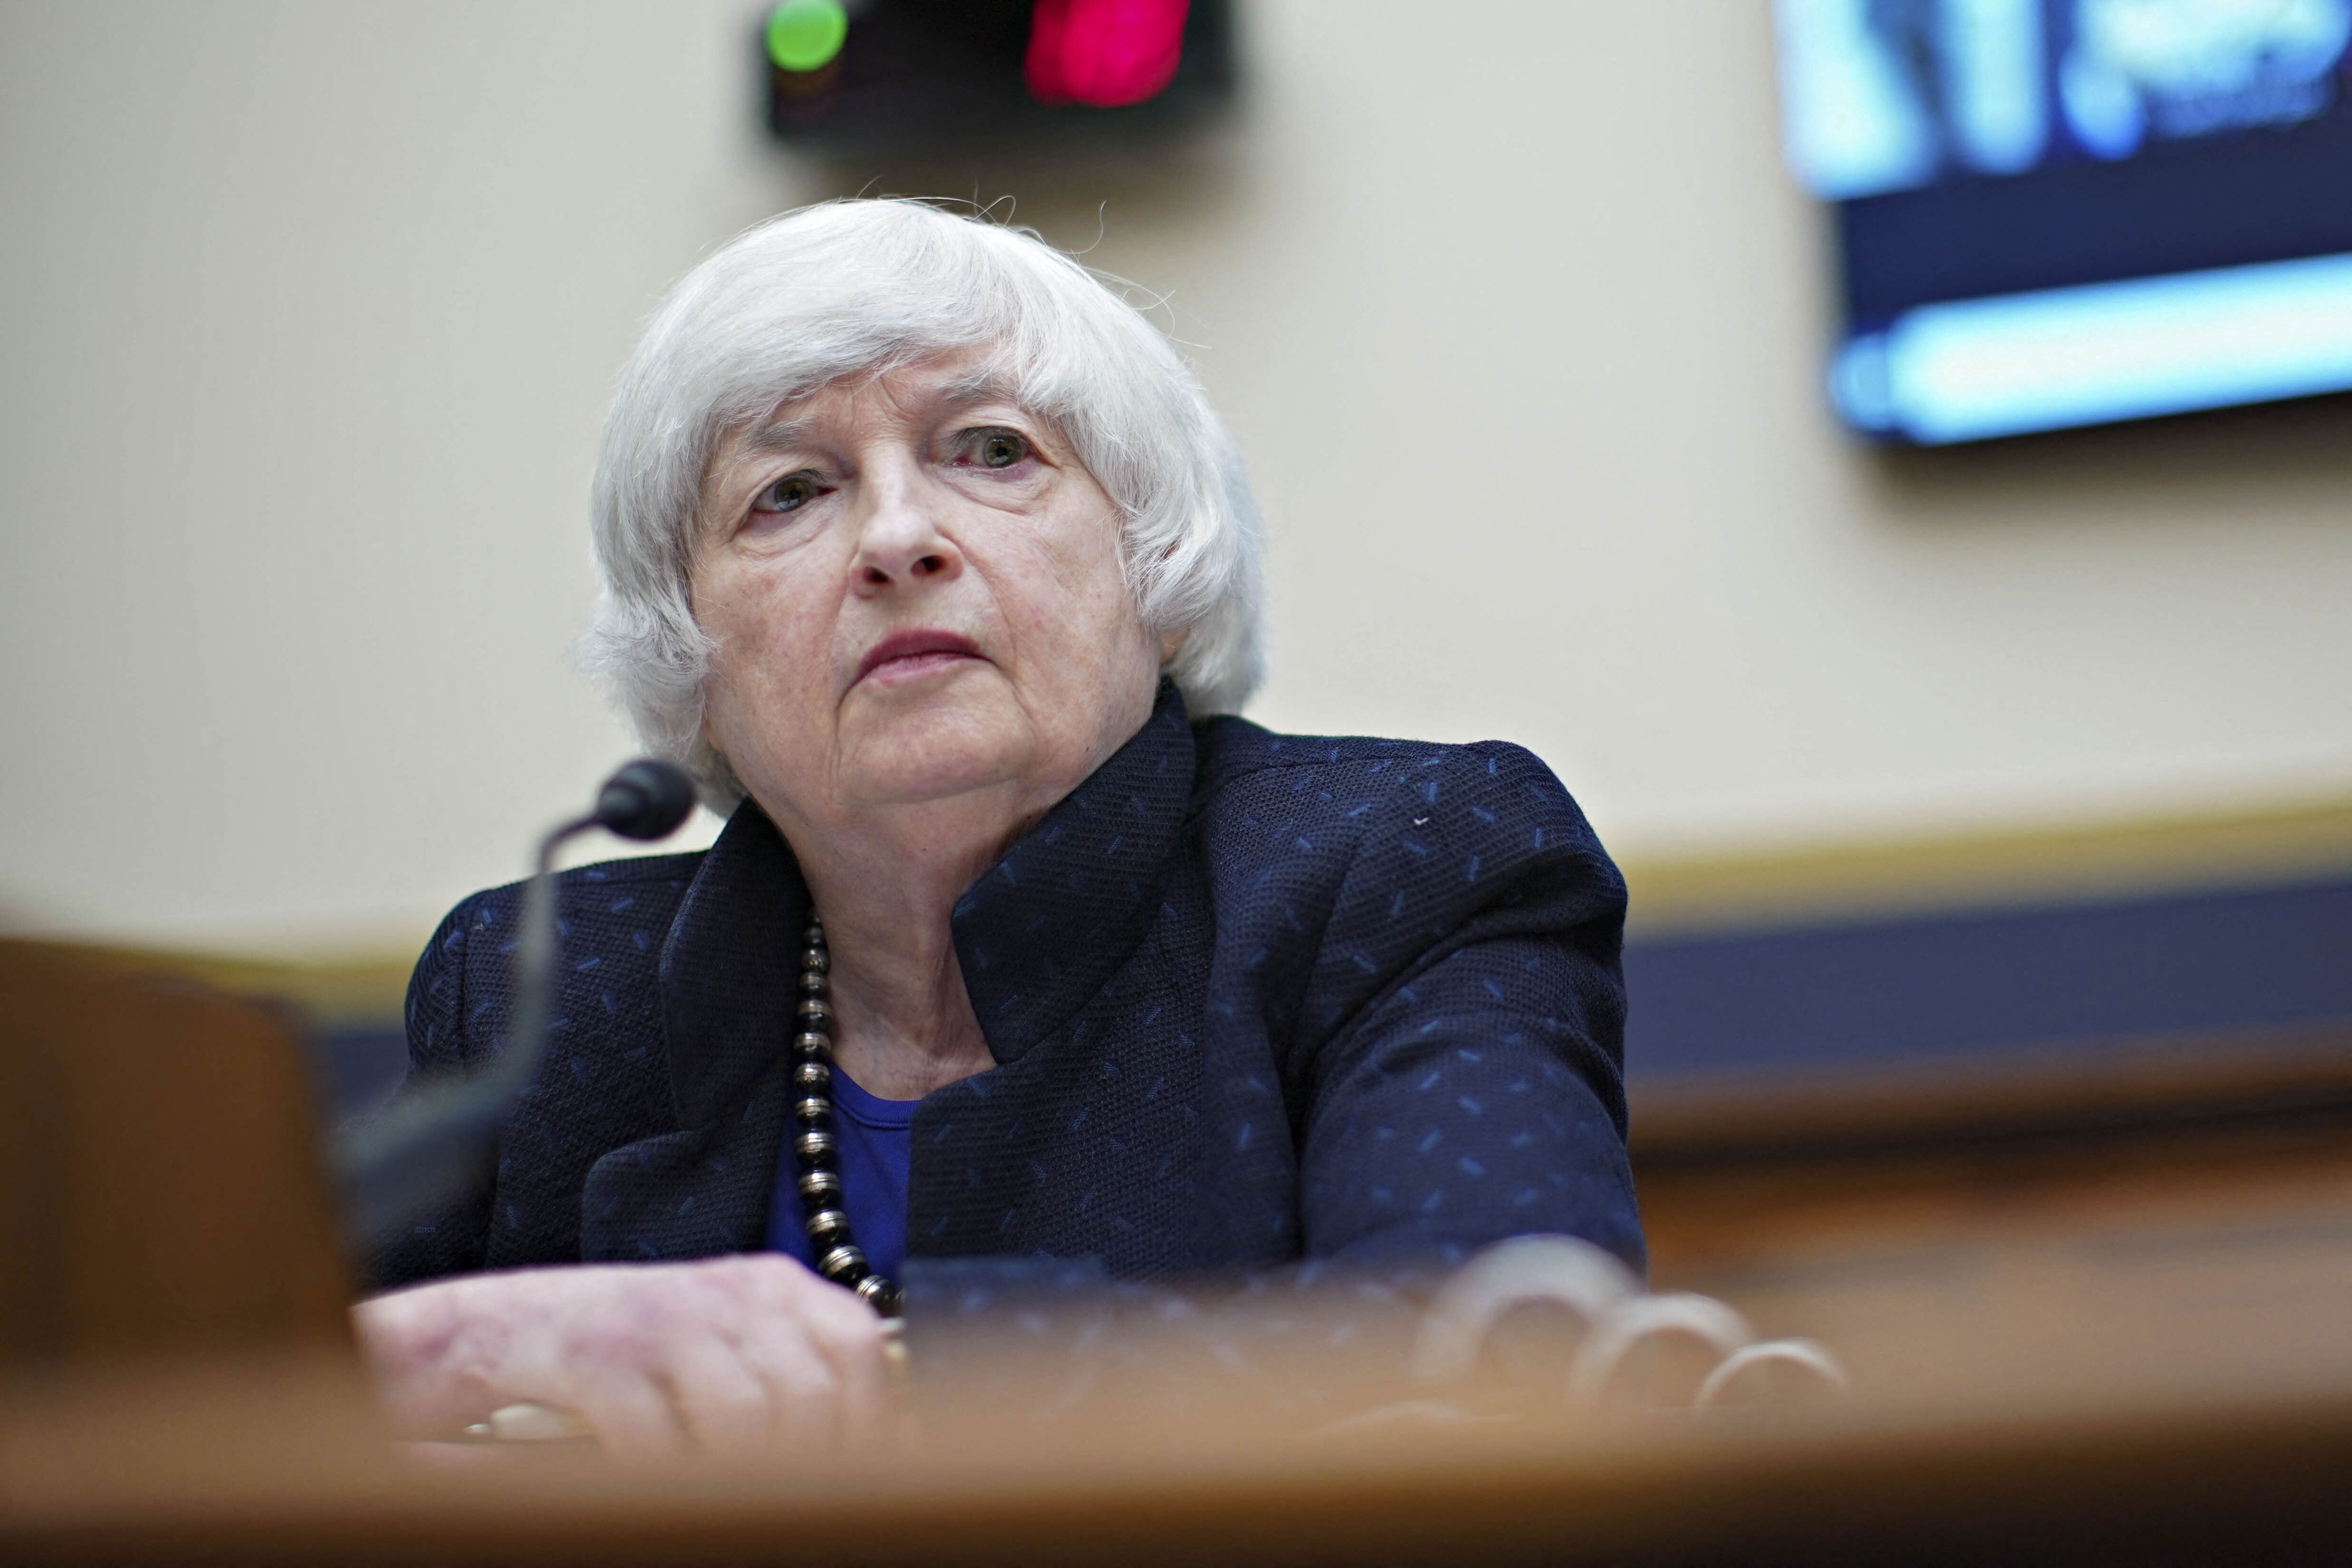 The facts around an IRS proposal some claim would allow 'spying' on Americans' bank accounts